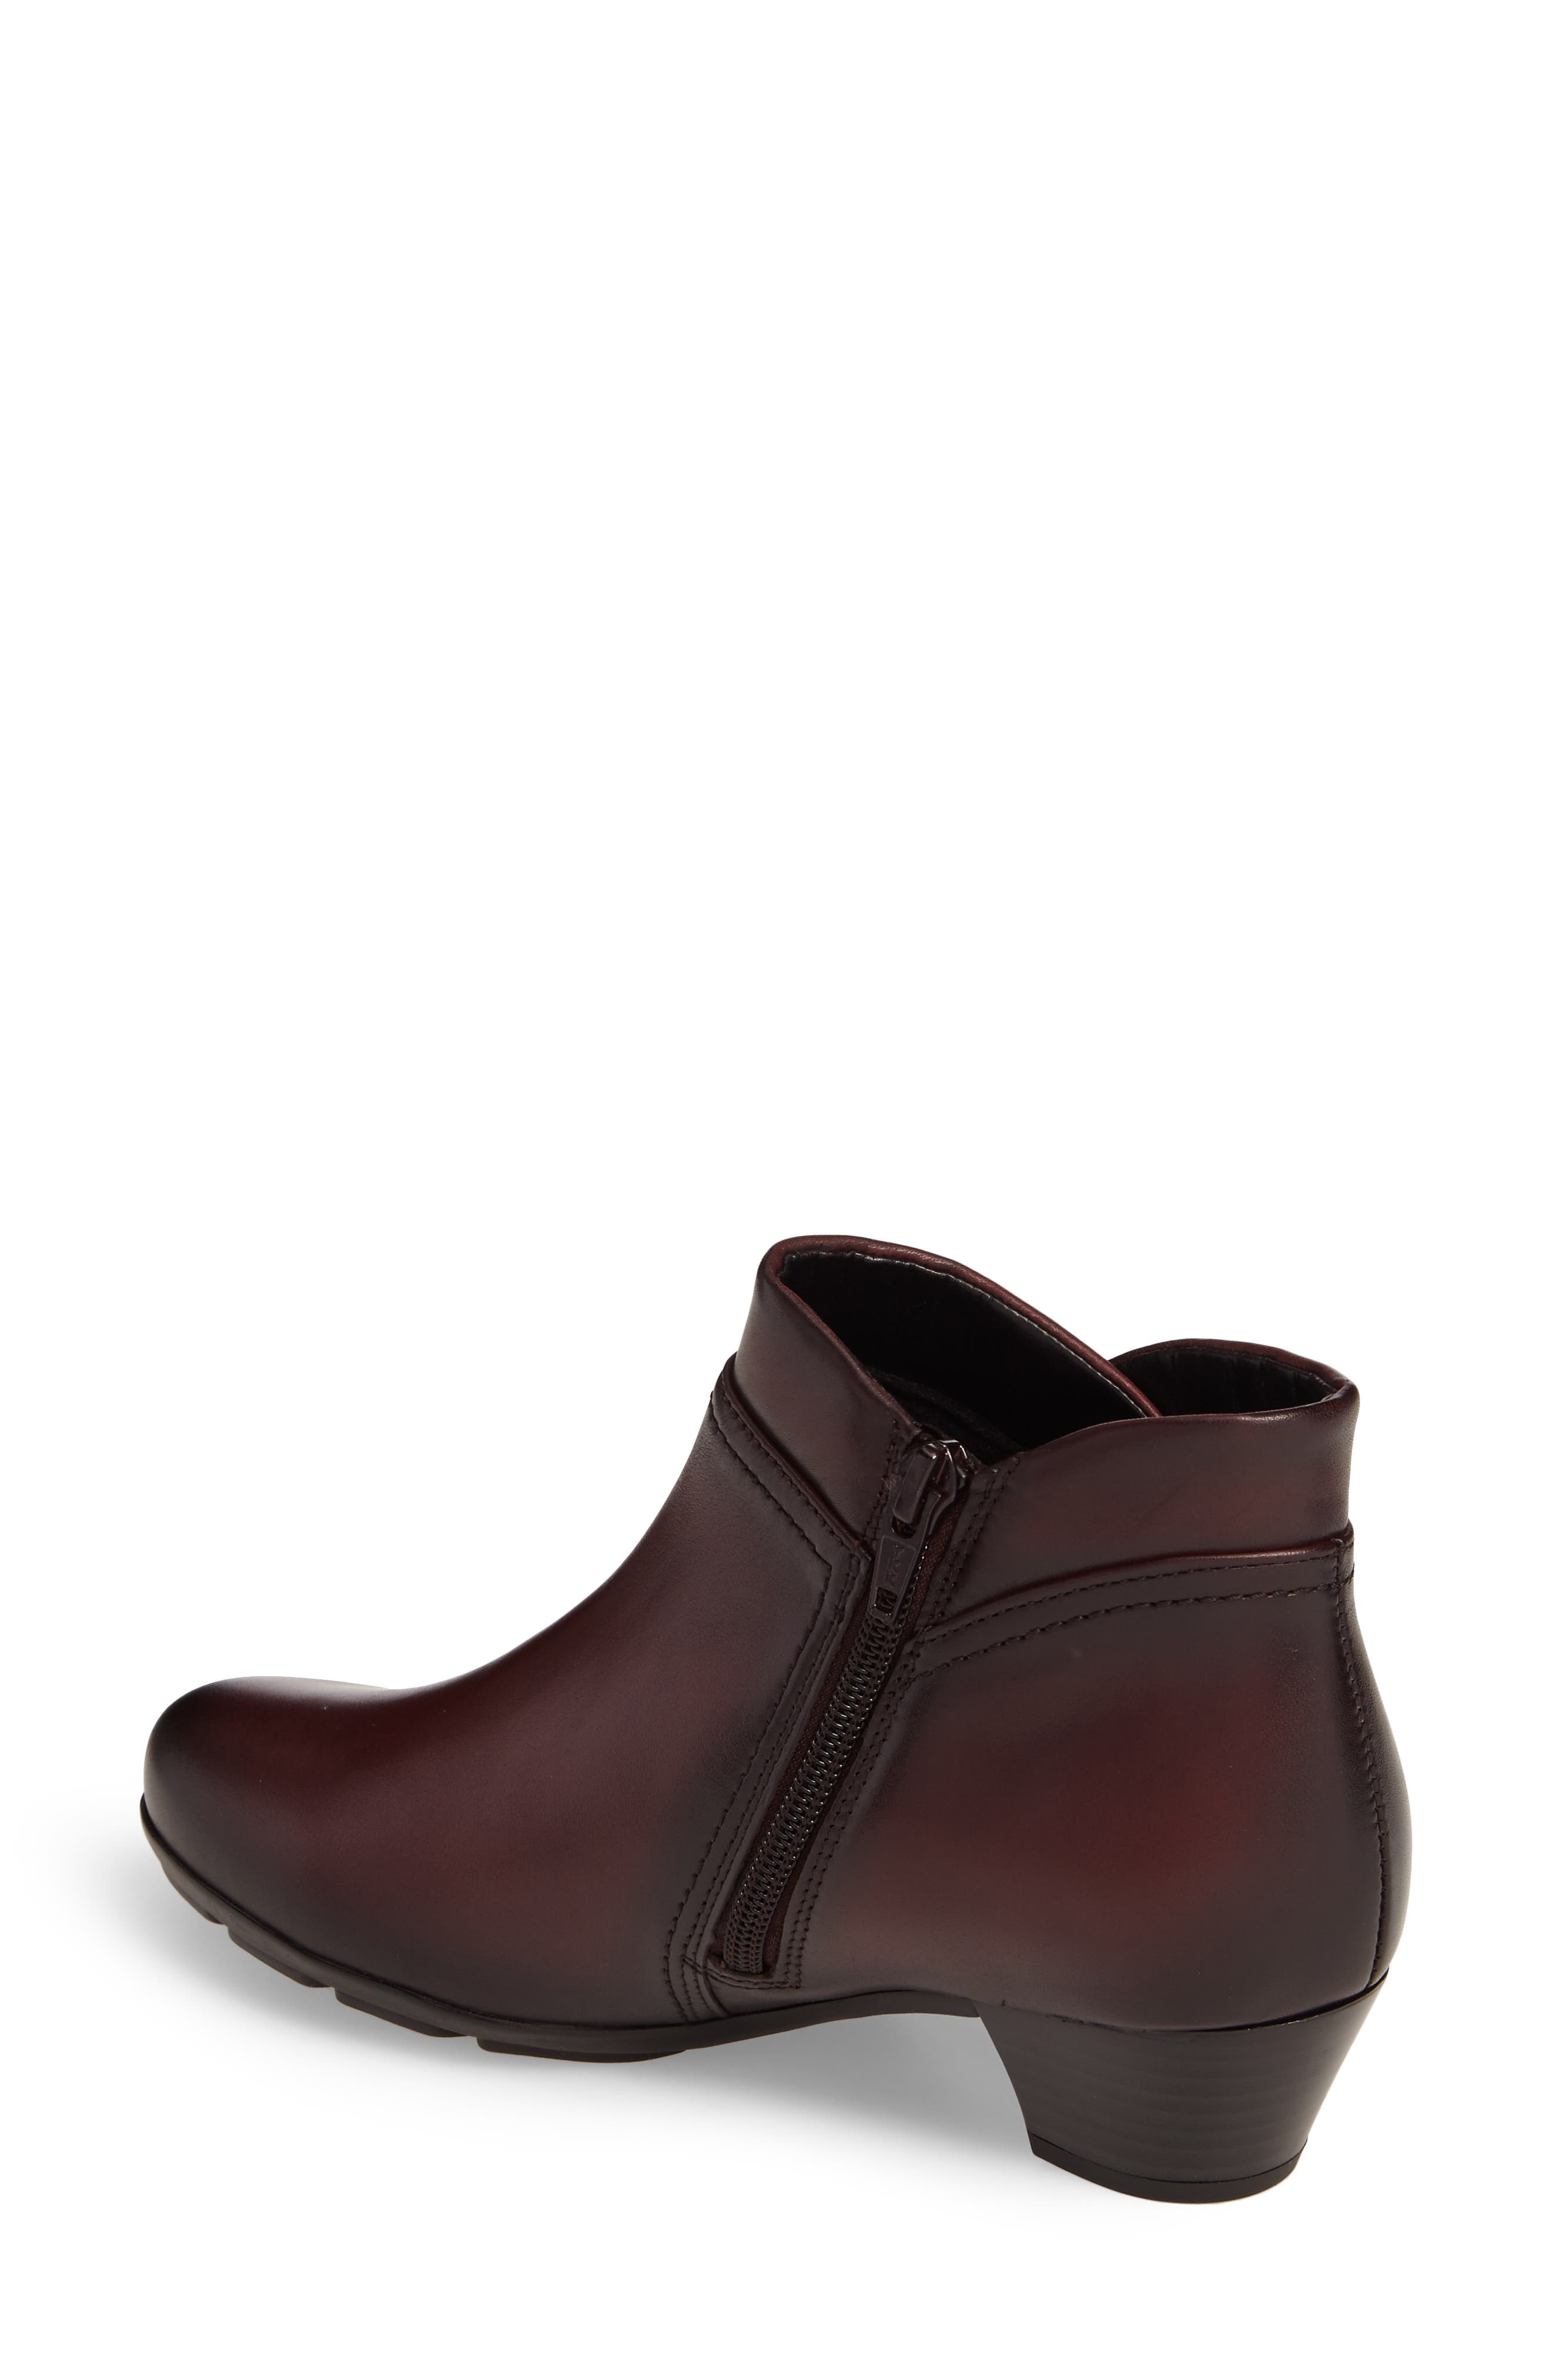 Classic Ankle Boot,                             Alternate thumbnail 2, color,                             WINE LEATHER